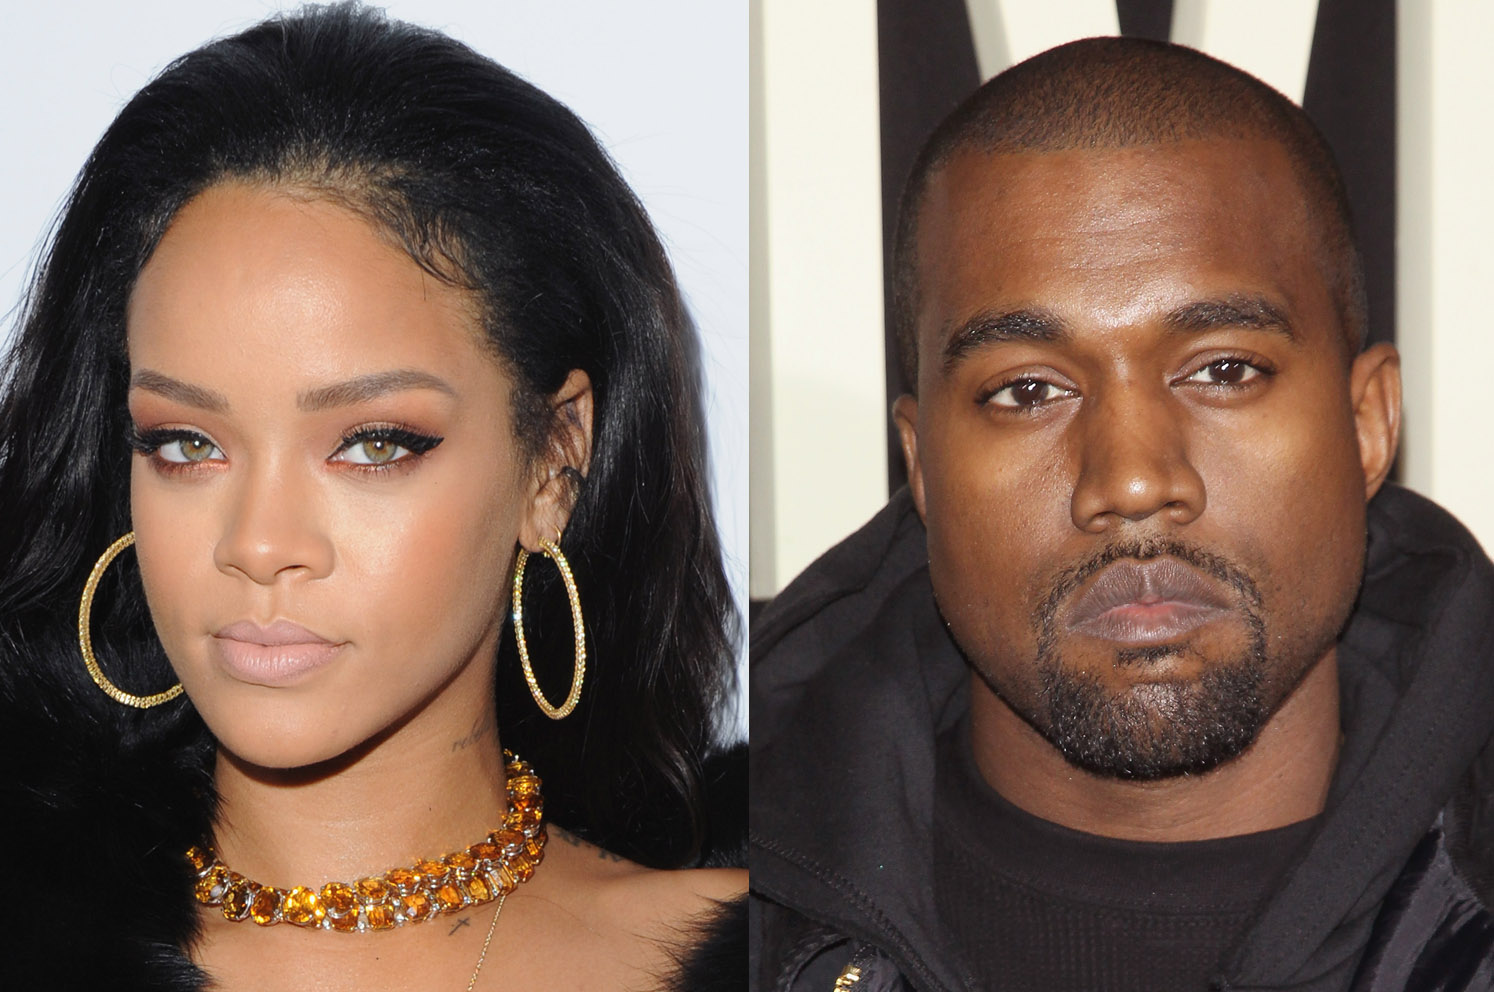 Rihanna (L) and Kanye West (R)